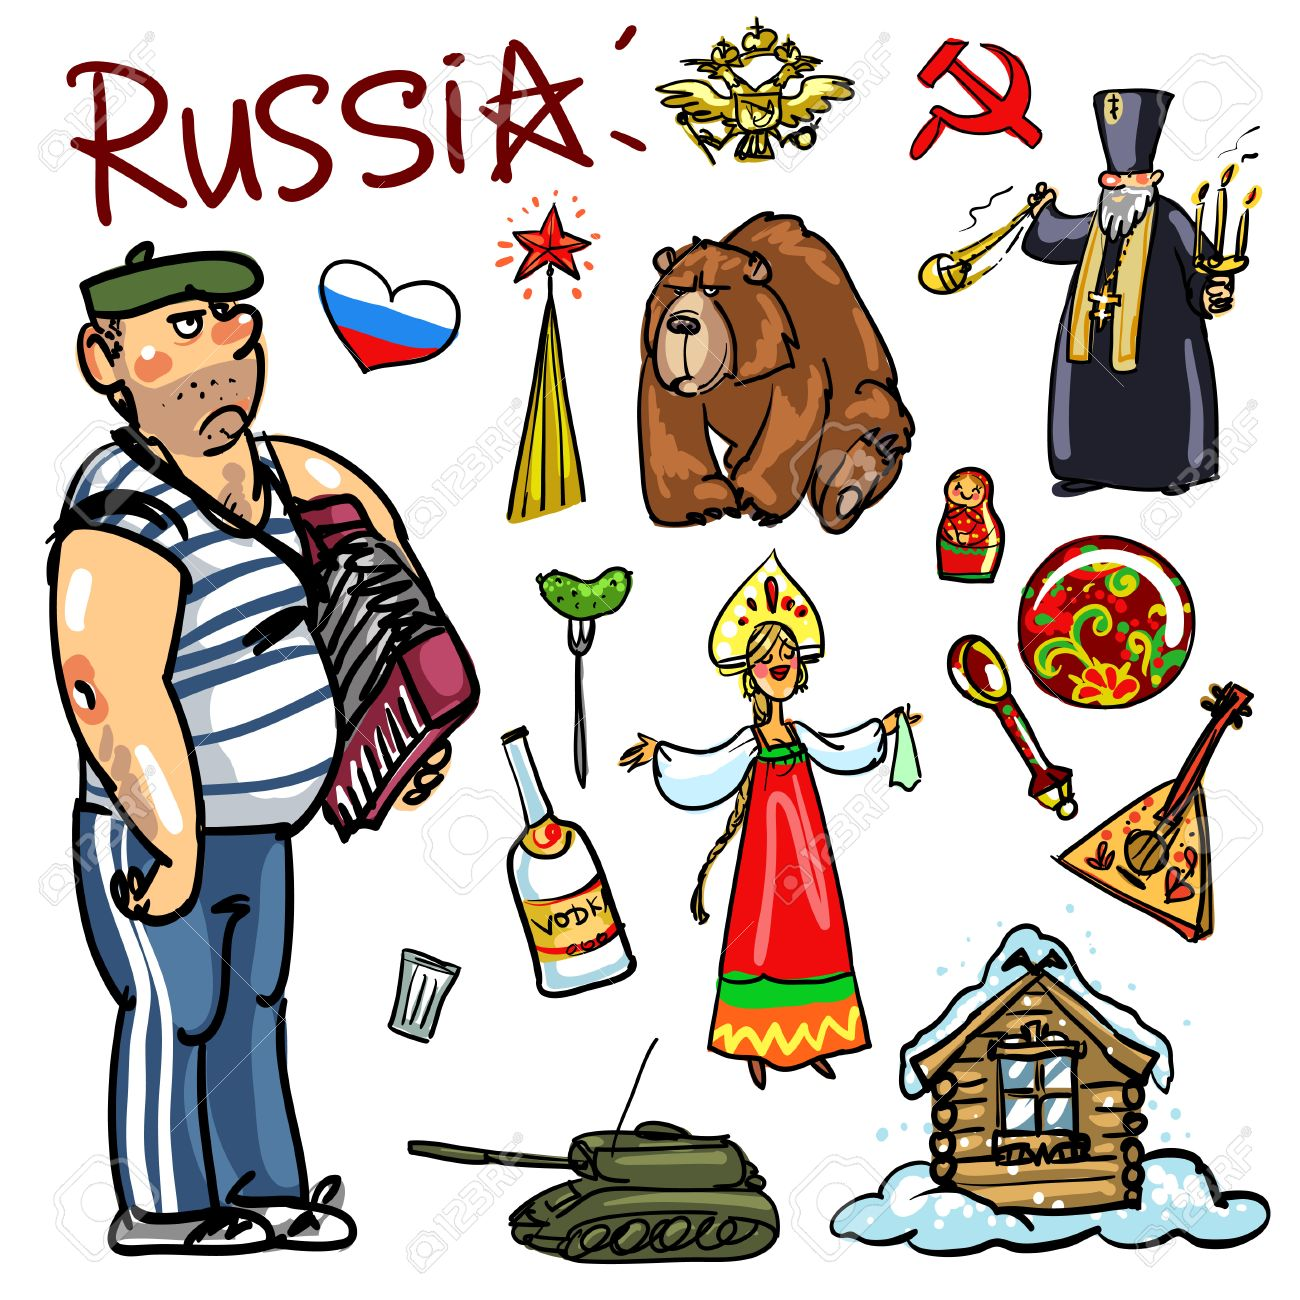 44411818-set-of-cartoon-hand-drawn-travelling-attractions-russia.jpg